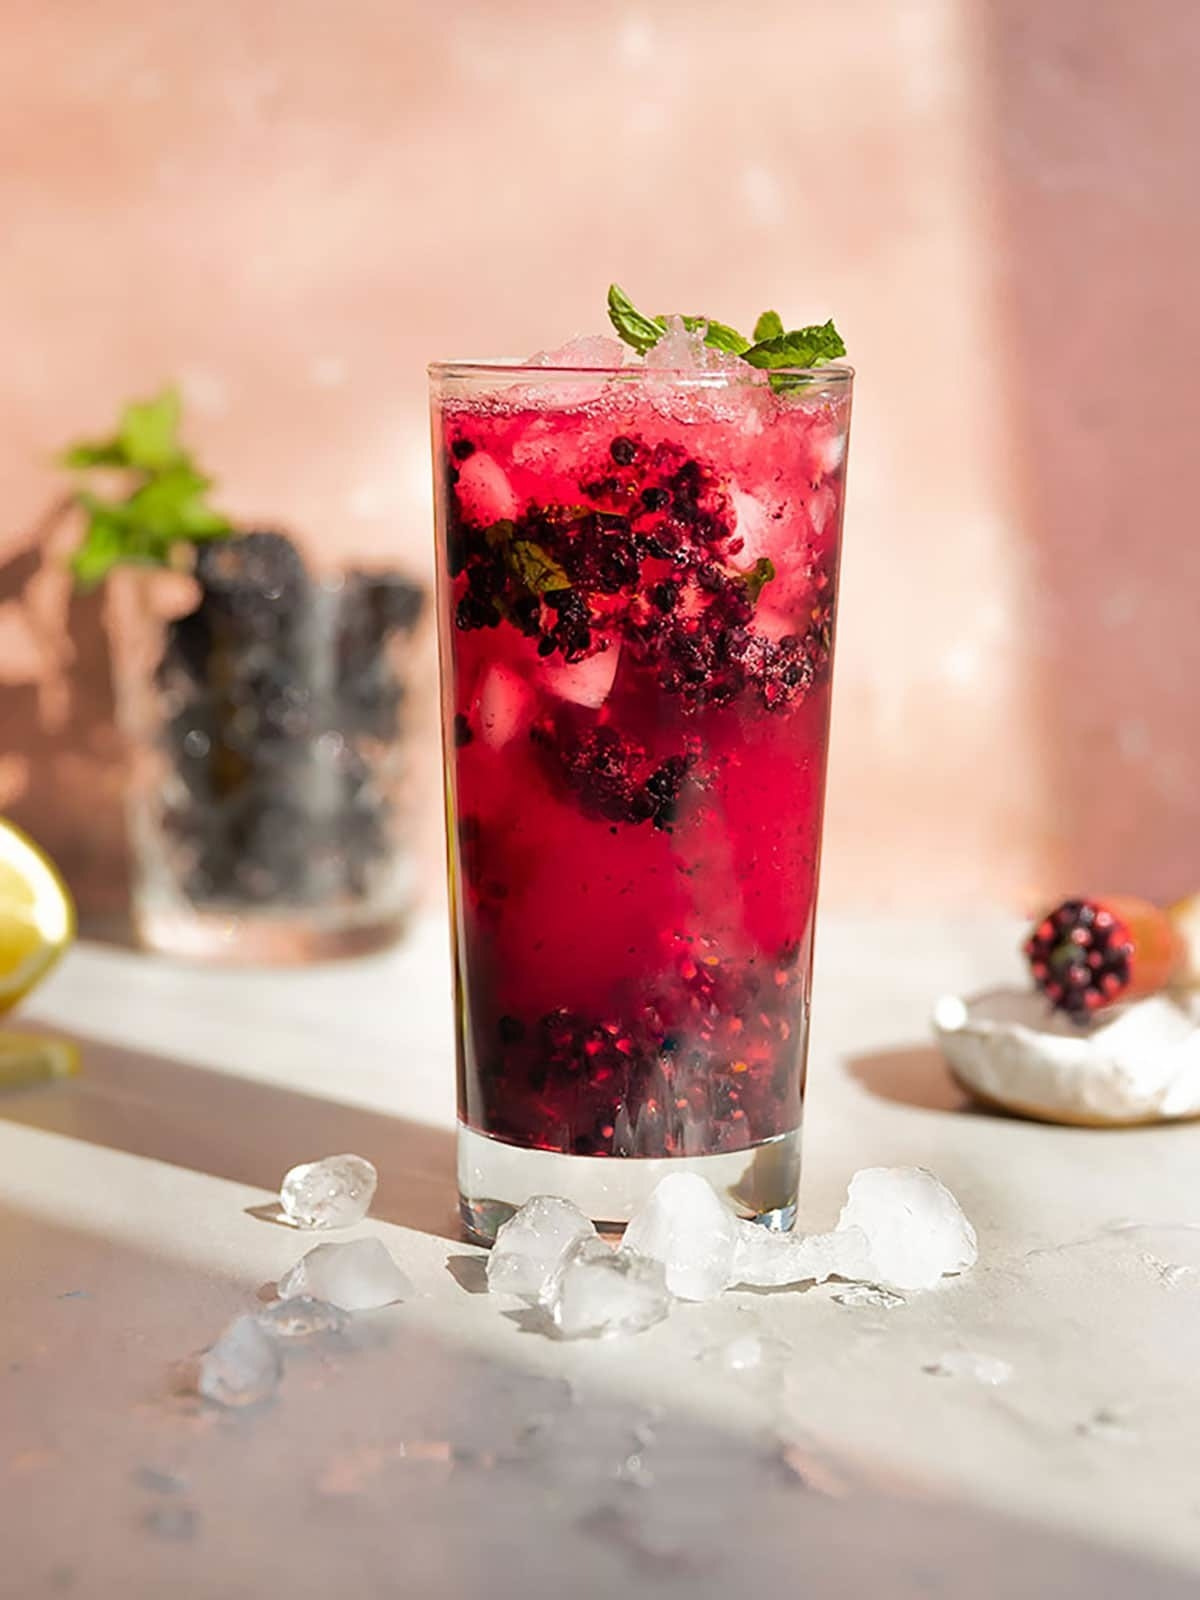 A glass of mojito with muddled blackberries.